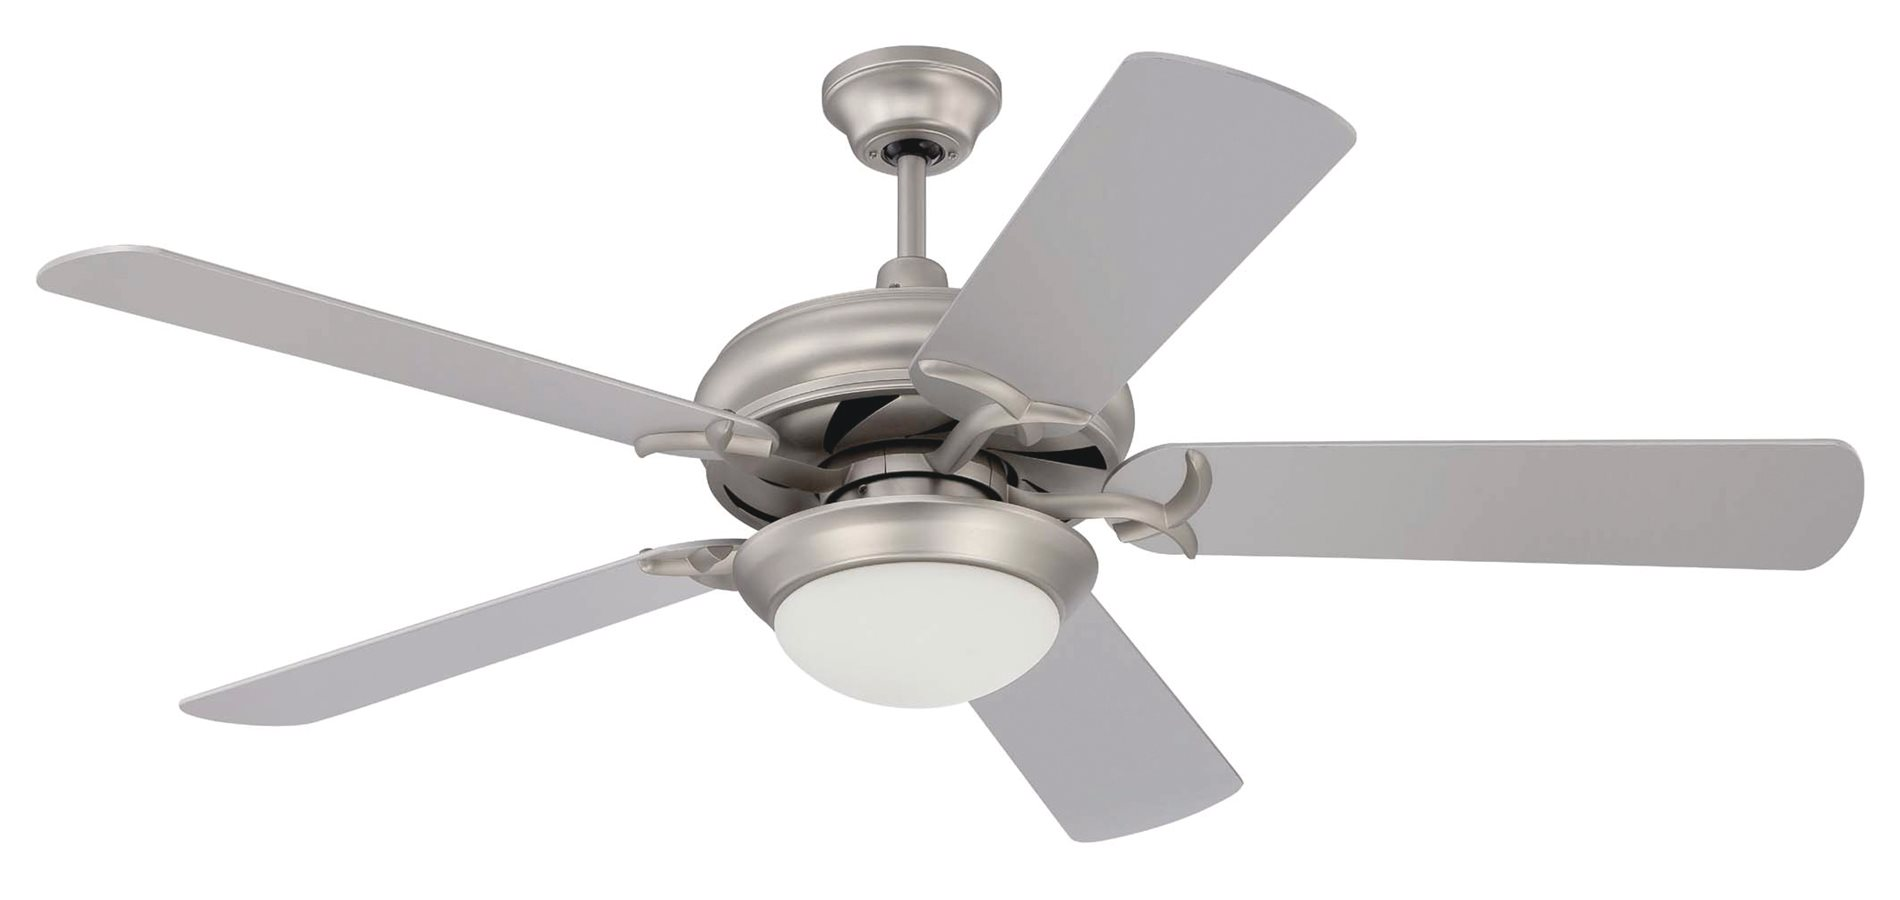 Craftmade Ceiling Fan Instruction Manual Review Home Co